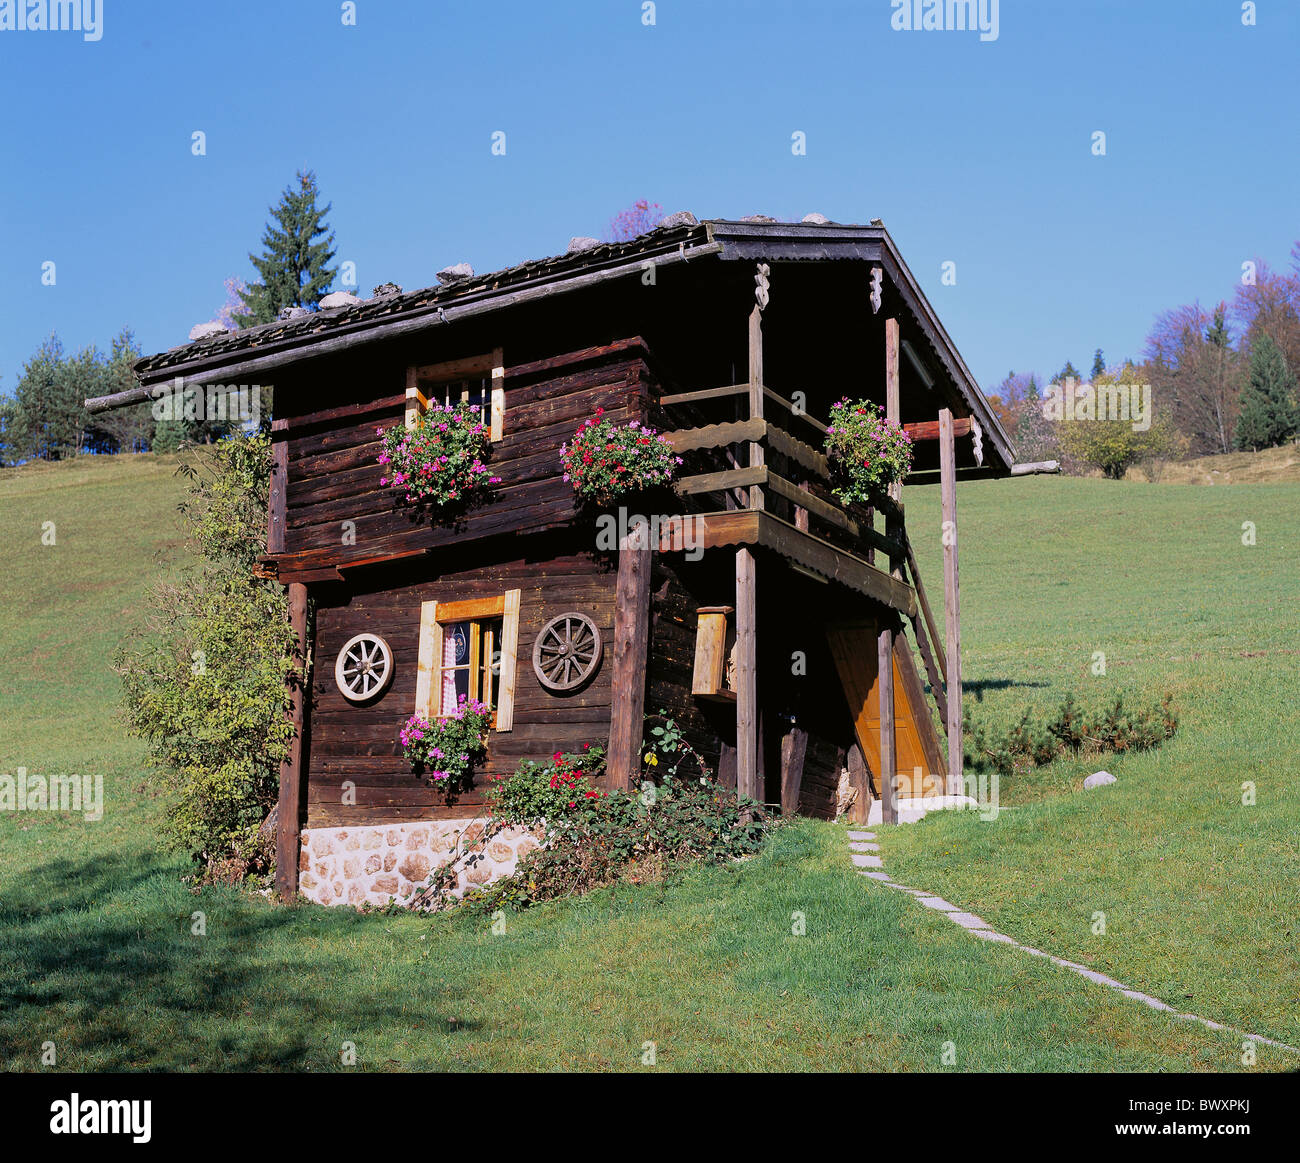 timber house log cabin small balcony meadow germany europe upper stock photo 33165318 alamy. Black Bedroom Furniture Sets. Home Design Ideas